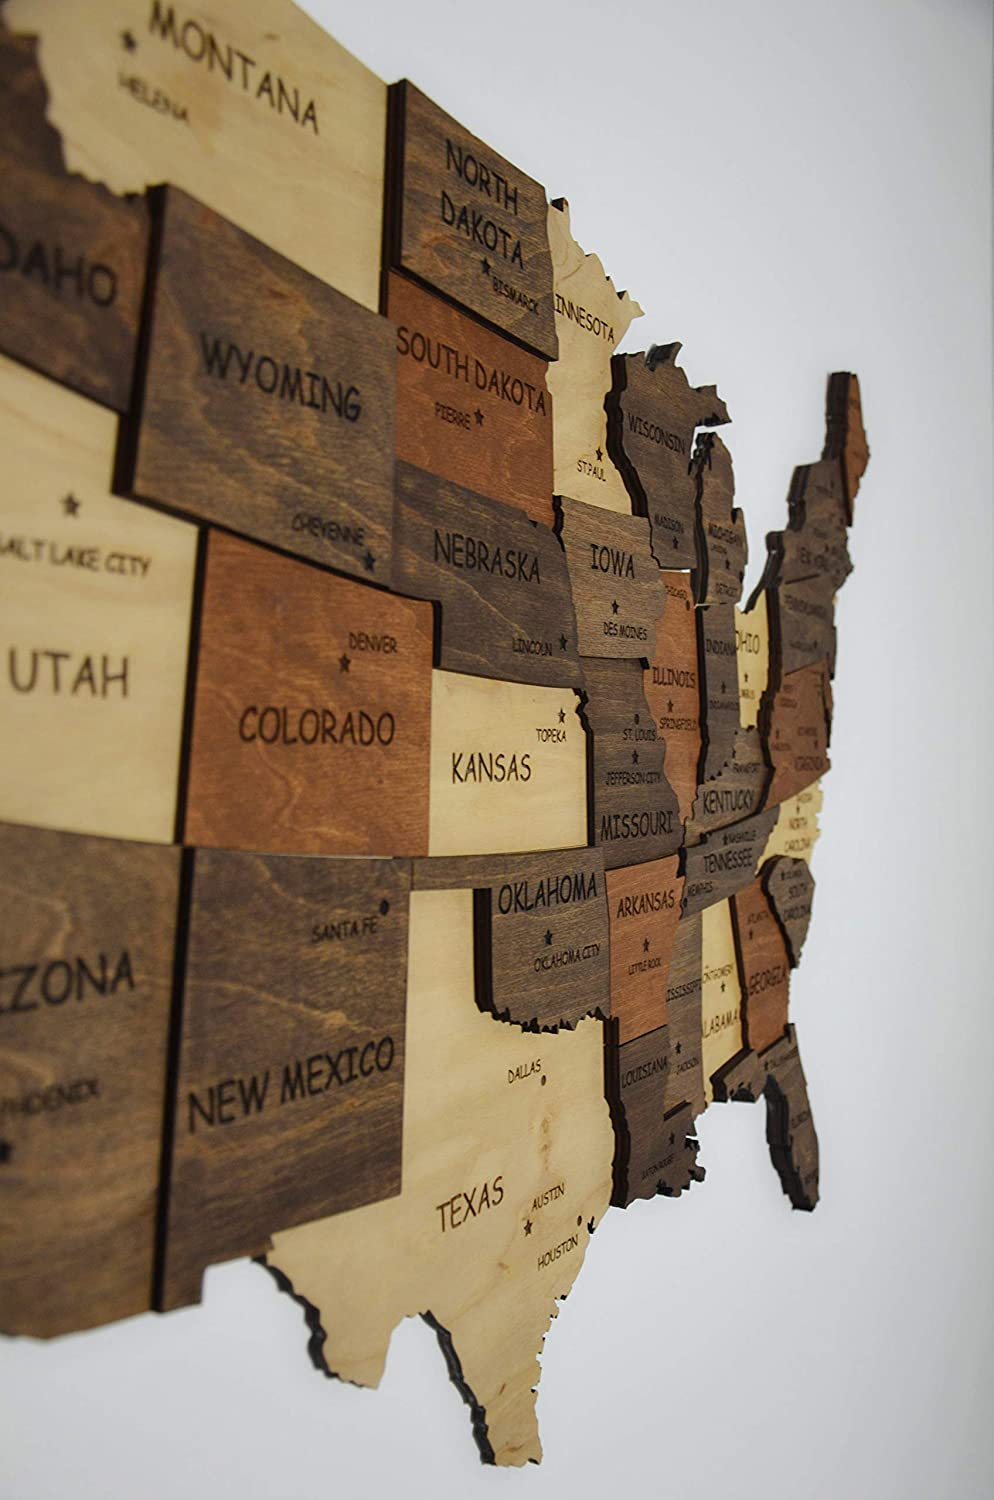 Wooden Map Of United States 3d Wooden Wall Art Wooden Map Dorm Decor Map Of Usa Handing Husband Boyfriend Gift 3d Wall Map Wedding Gift For Couple